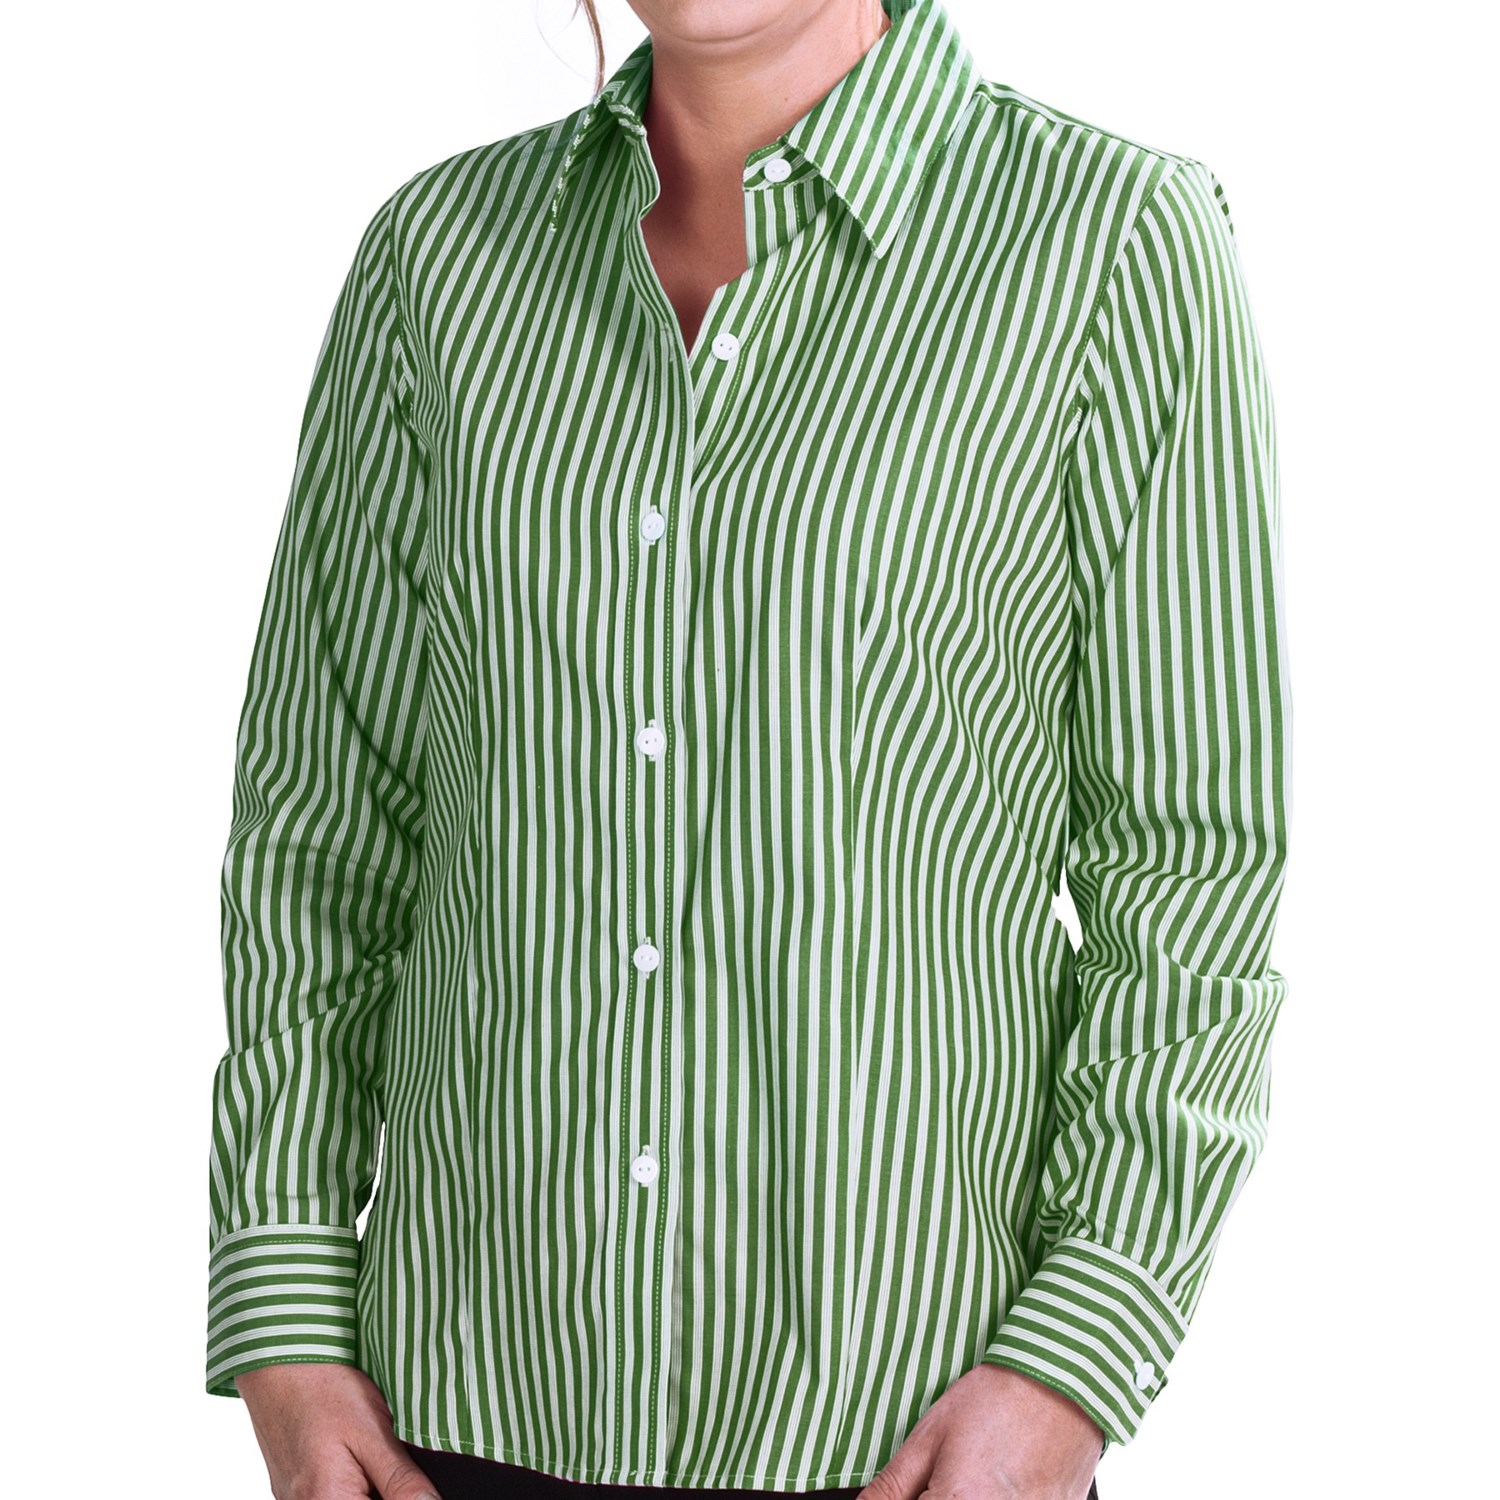 Foxcroft twill stripe shirt wrinkle free long sleeve for How do wrinkle free shirts work